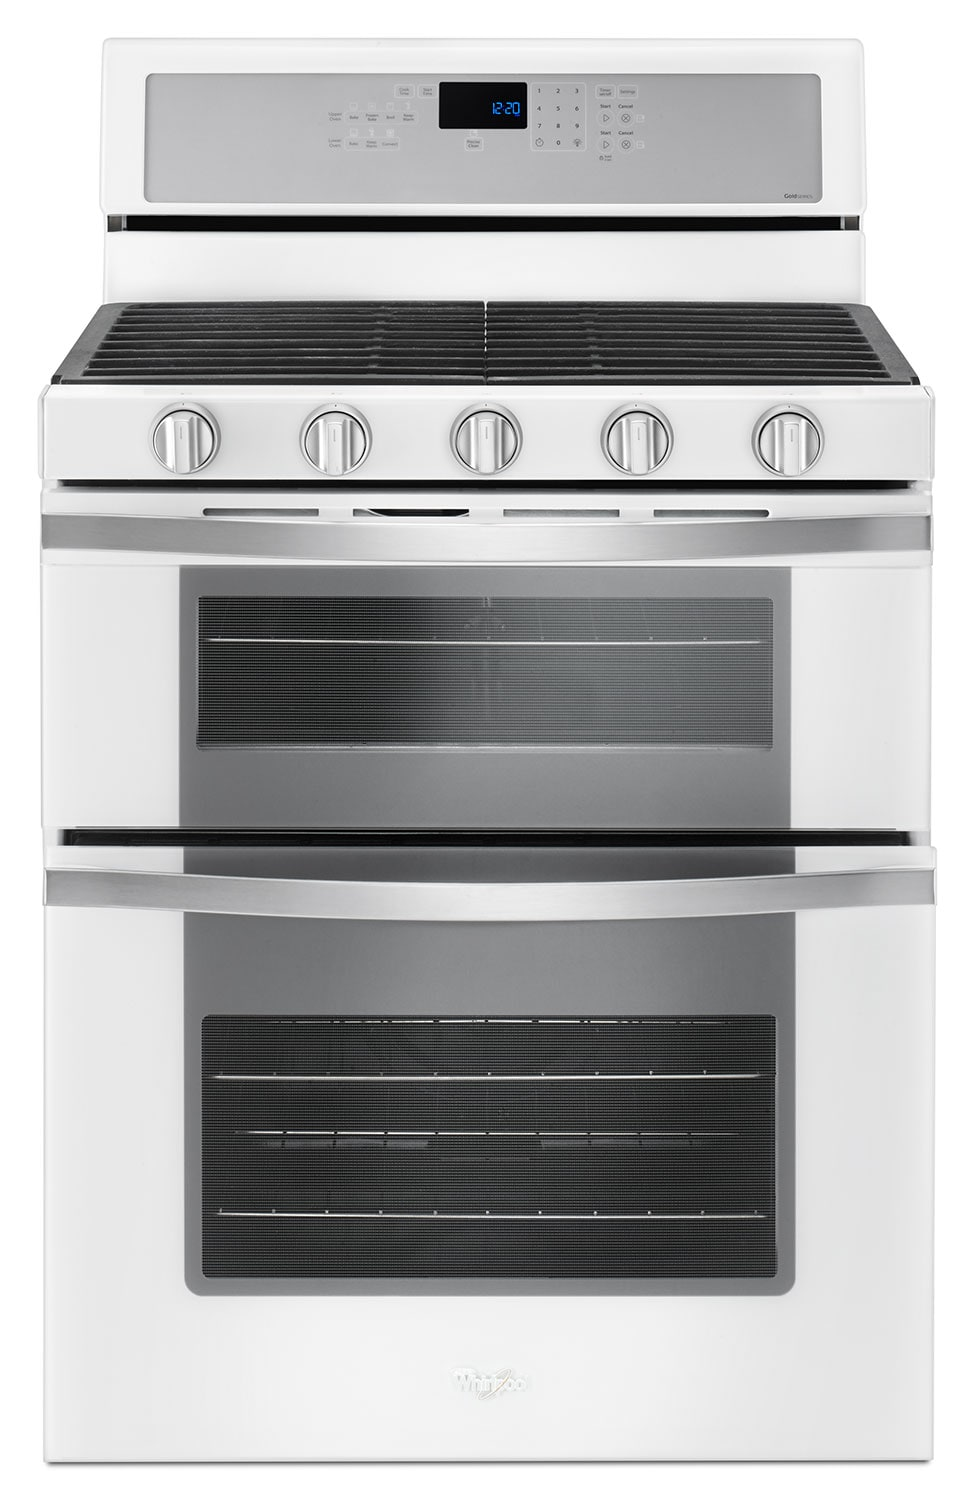 Cooking Products - Whirlpool White Freestanding Double Gas Range (6.0 Cu. Ft.) - WGG745S0FH